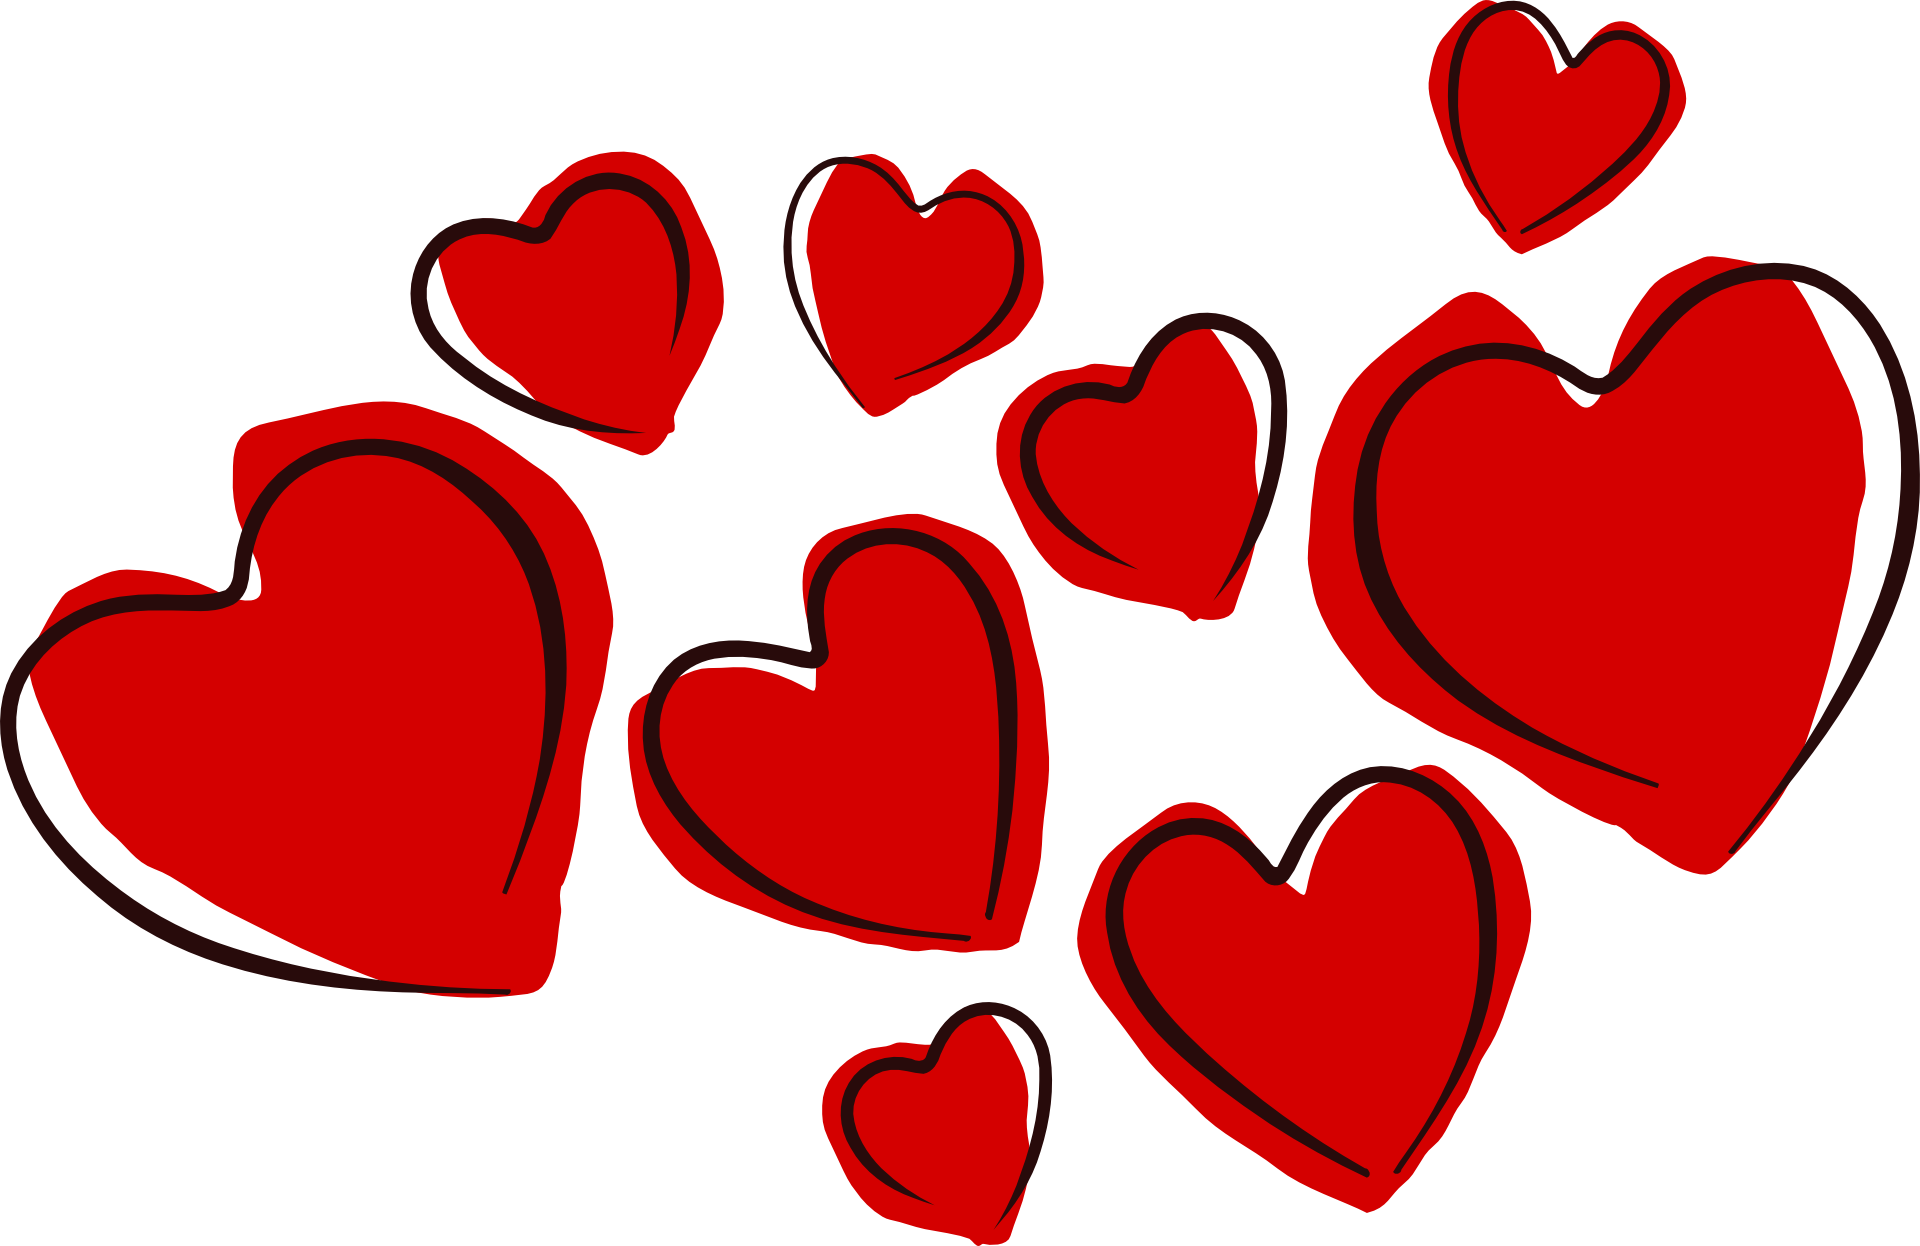 Love Hearts PNG Image